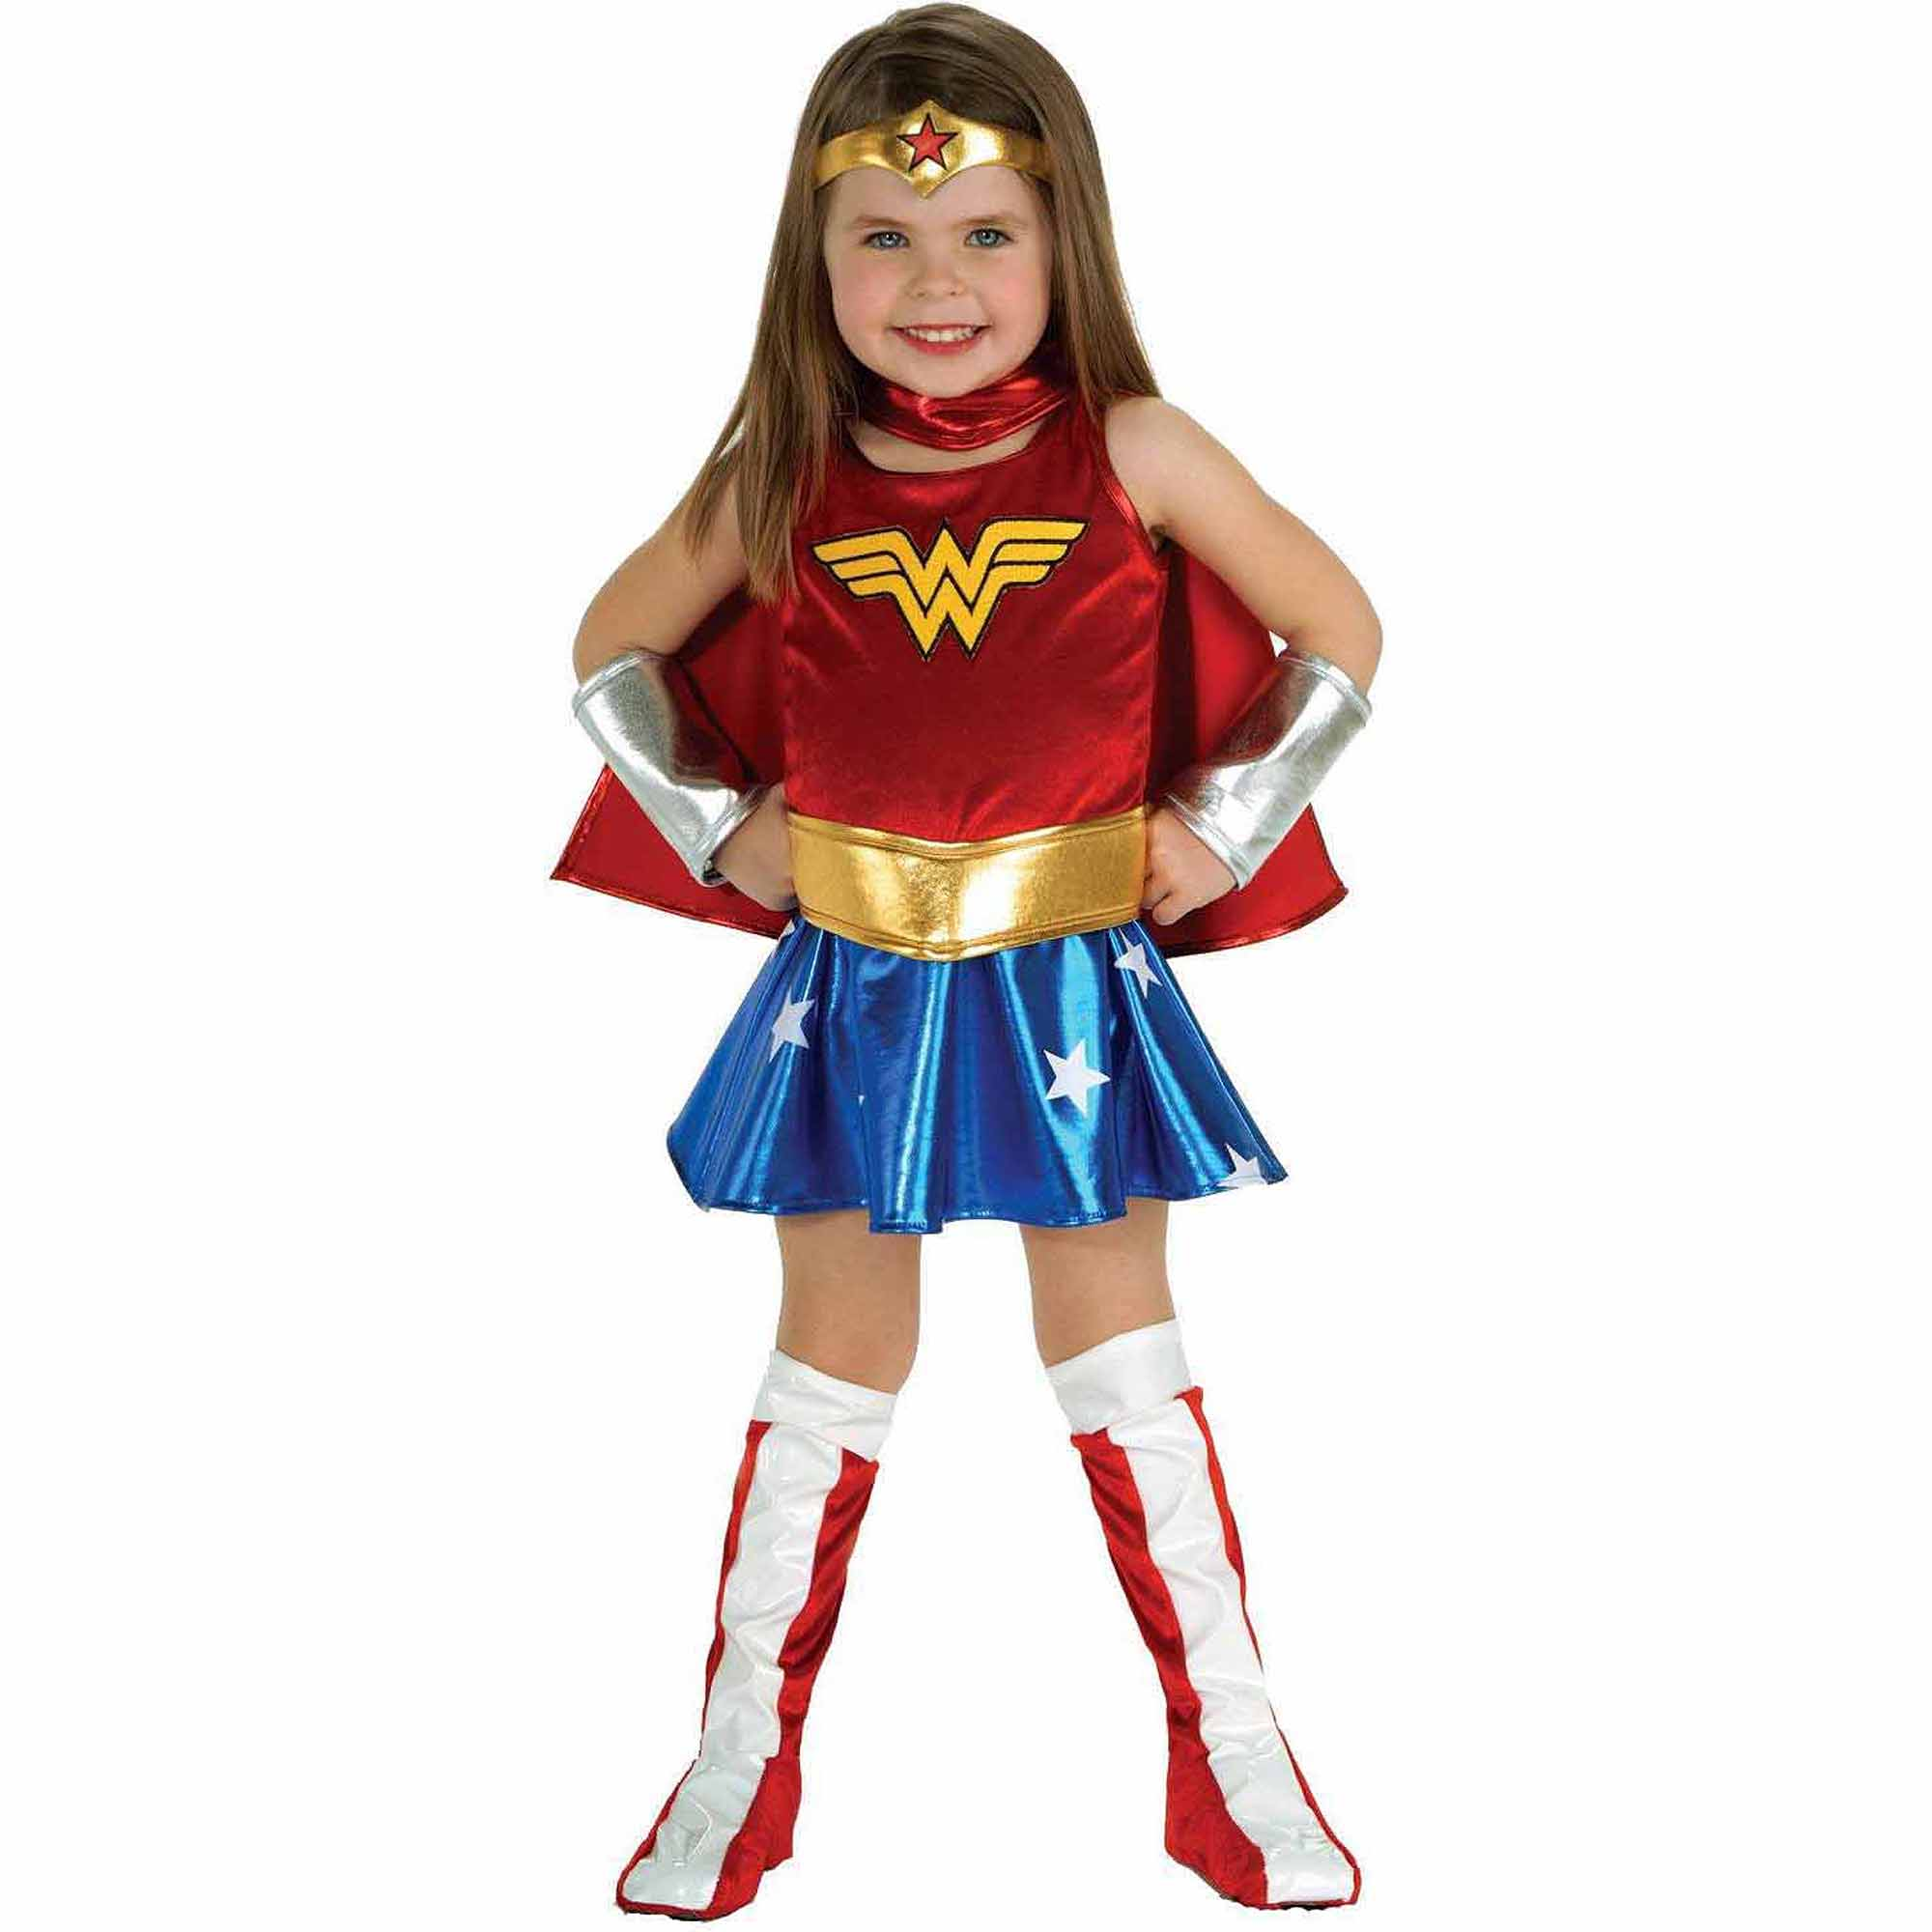 Wonder Woman Toddler Halloween Costume, (2T- 4T)